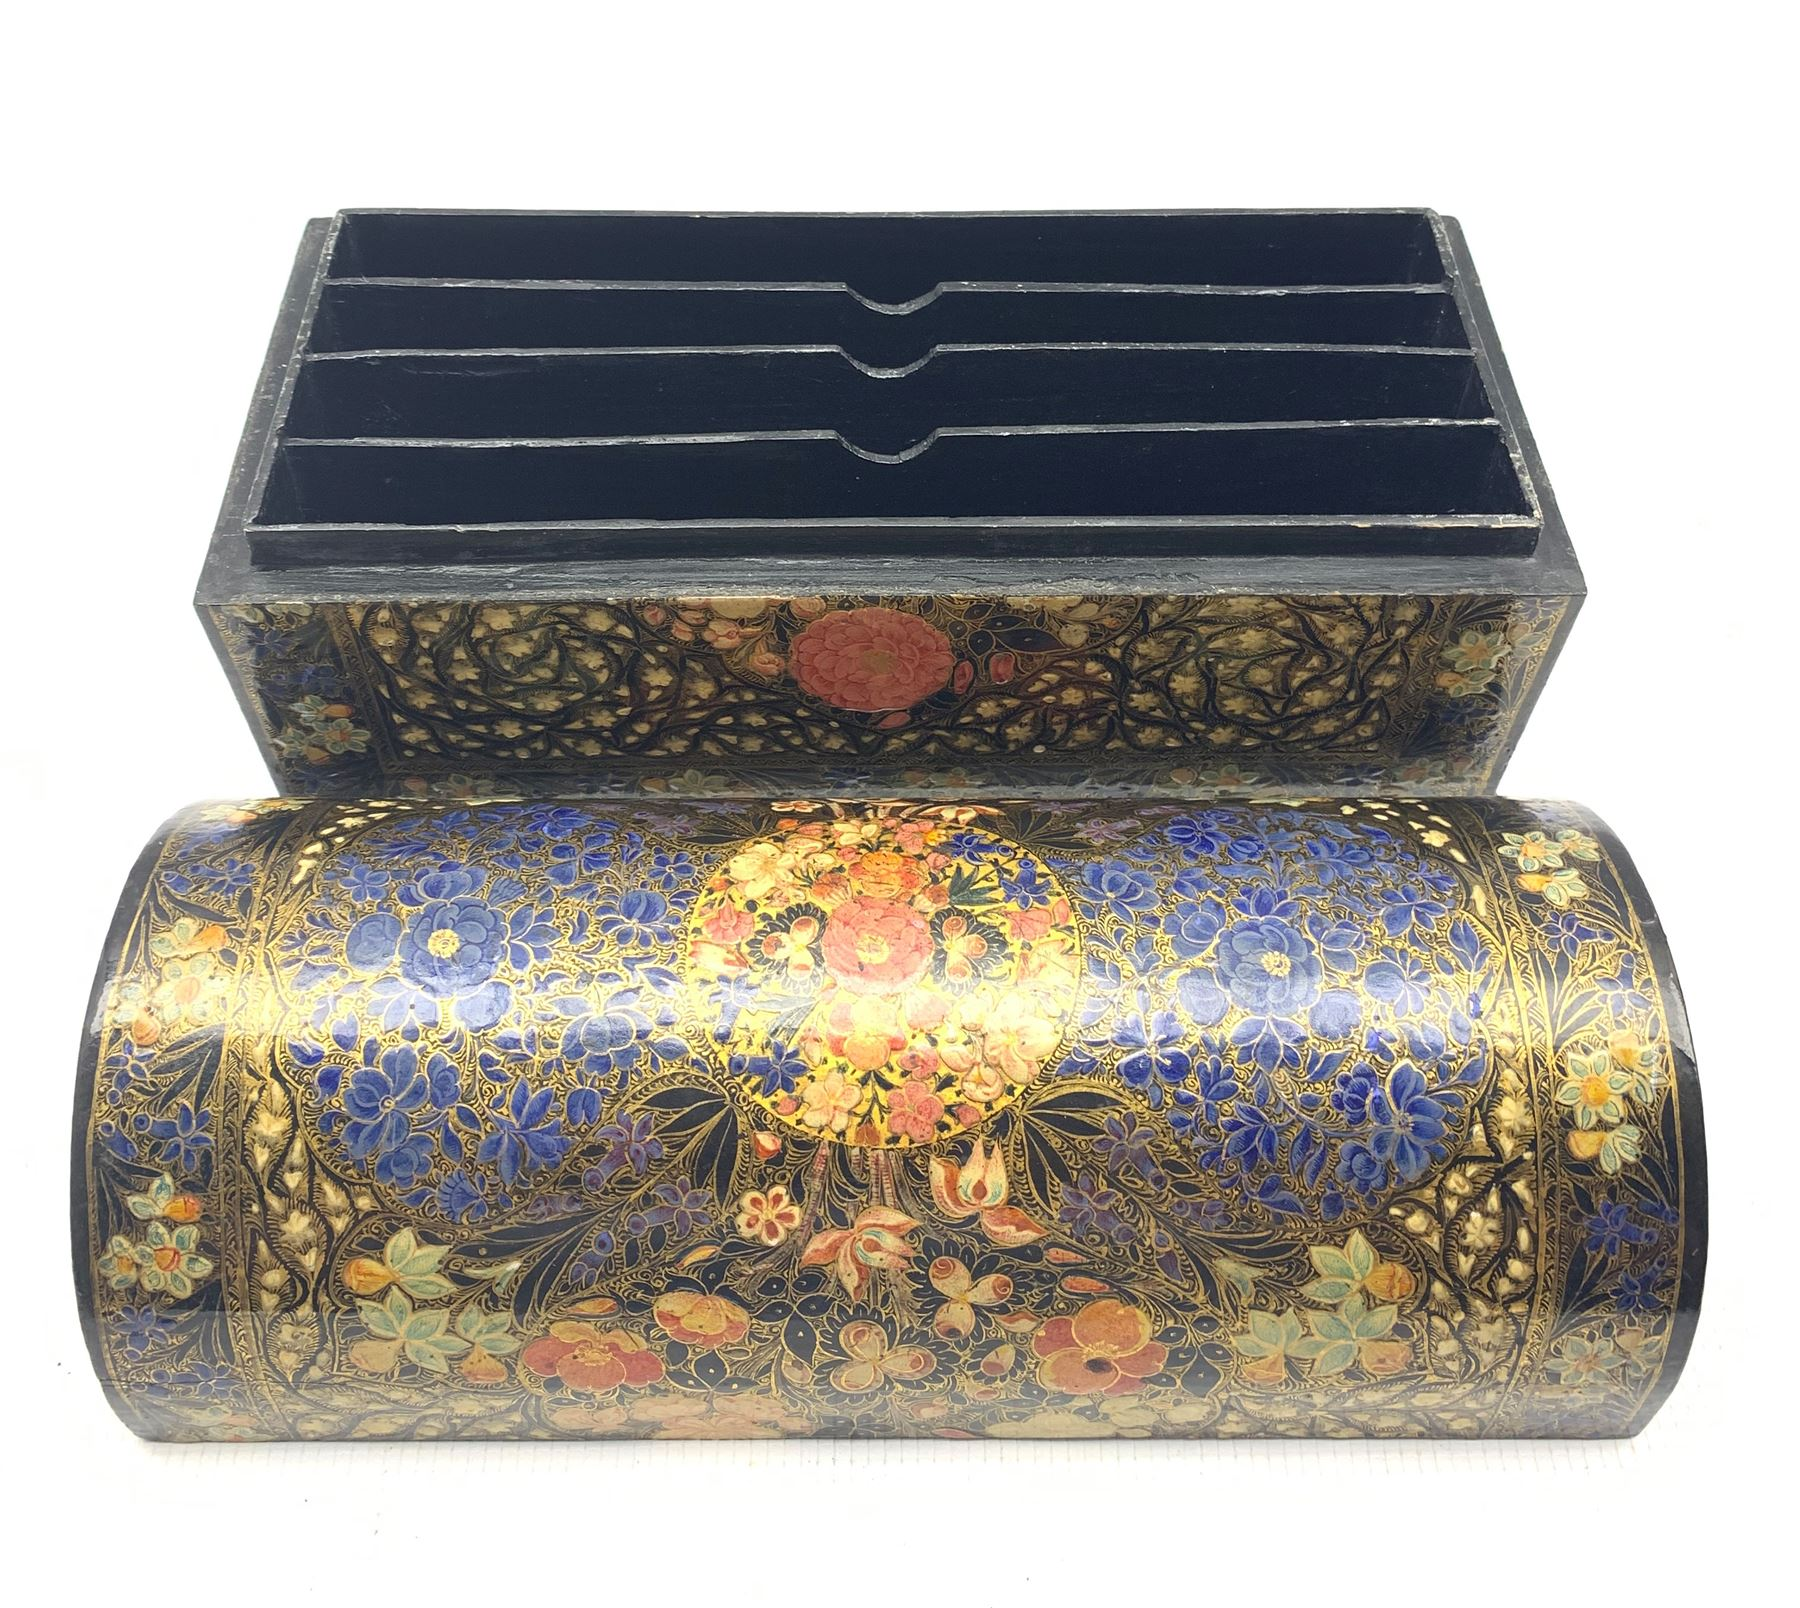 Kashmiri lacquered stationery casket with domed cover and divided interior painted with flower heads - Image 3 of 4